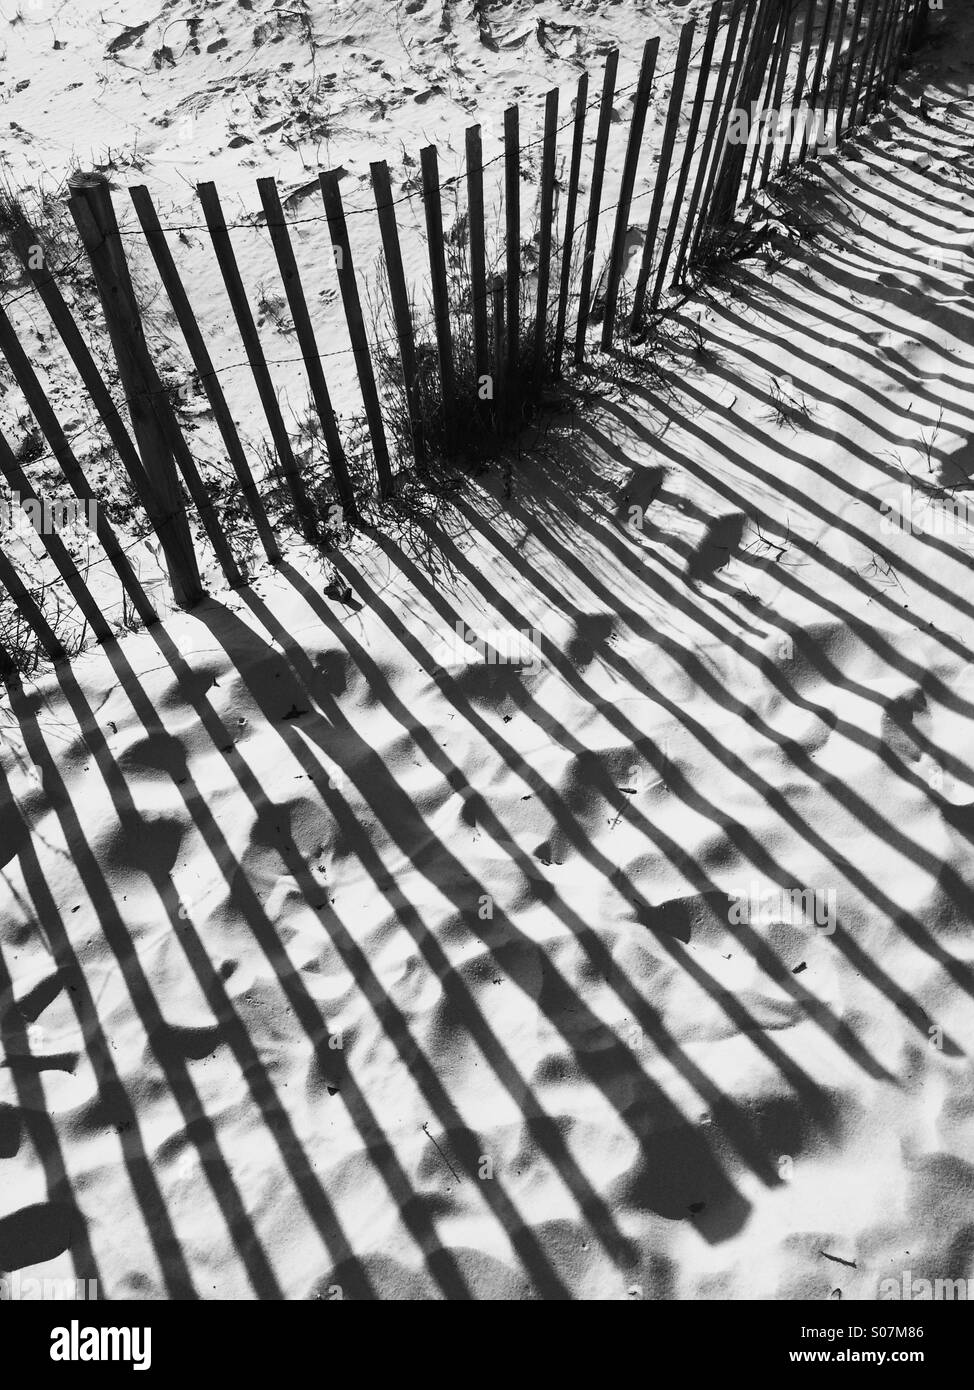 Shadows of a wooden beach fence in a  sand dune, in black and white. - Stock Image